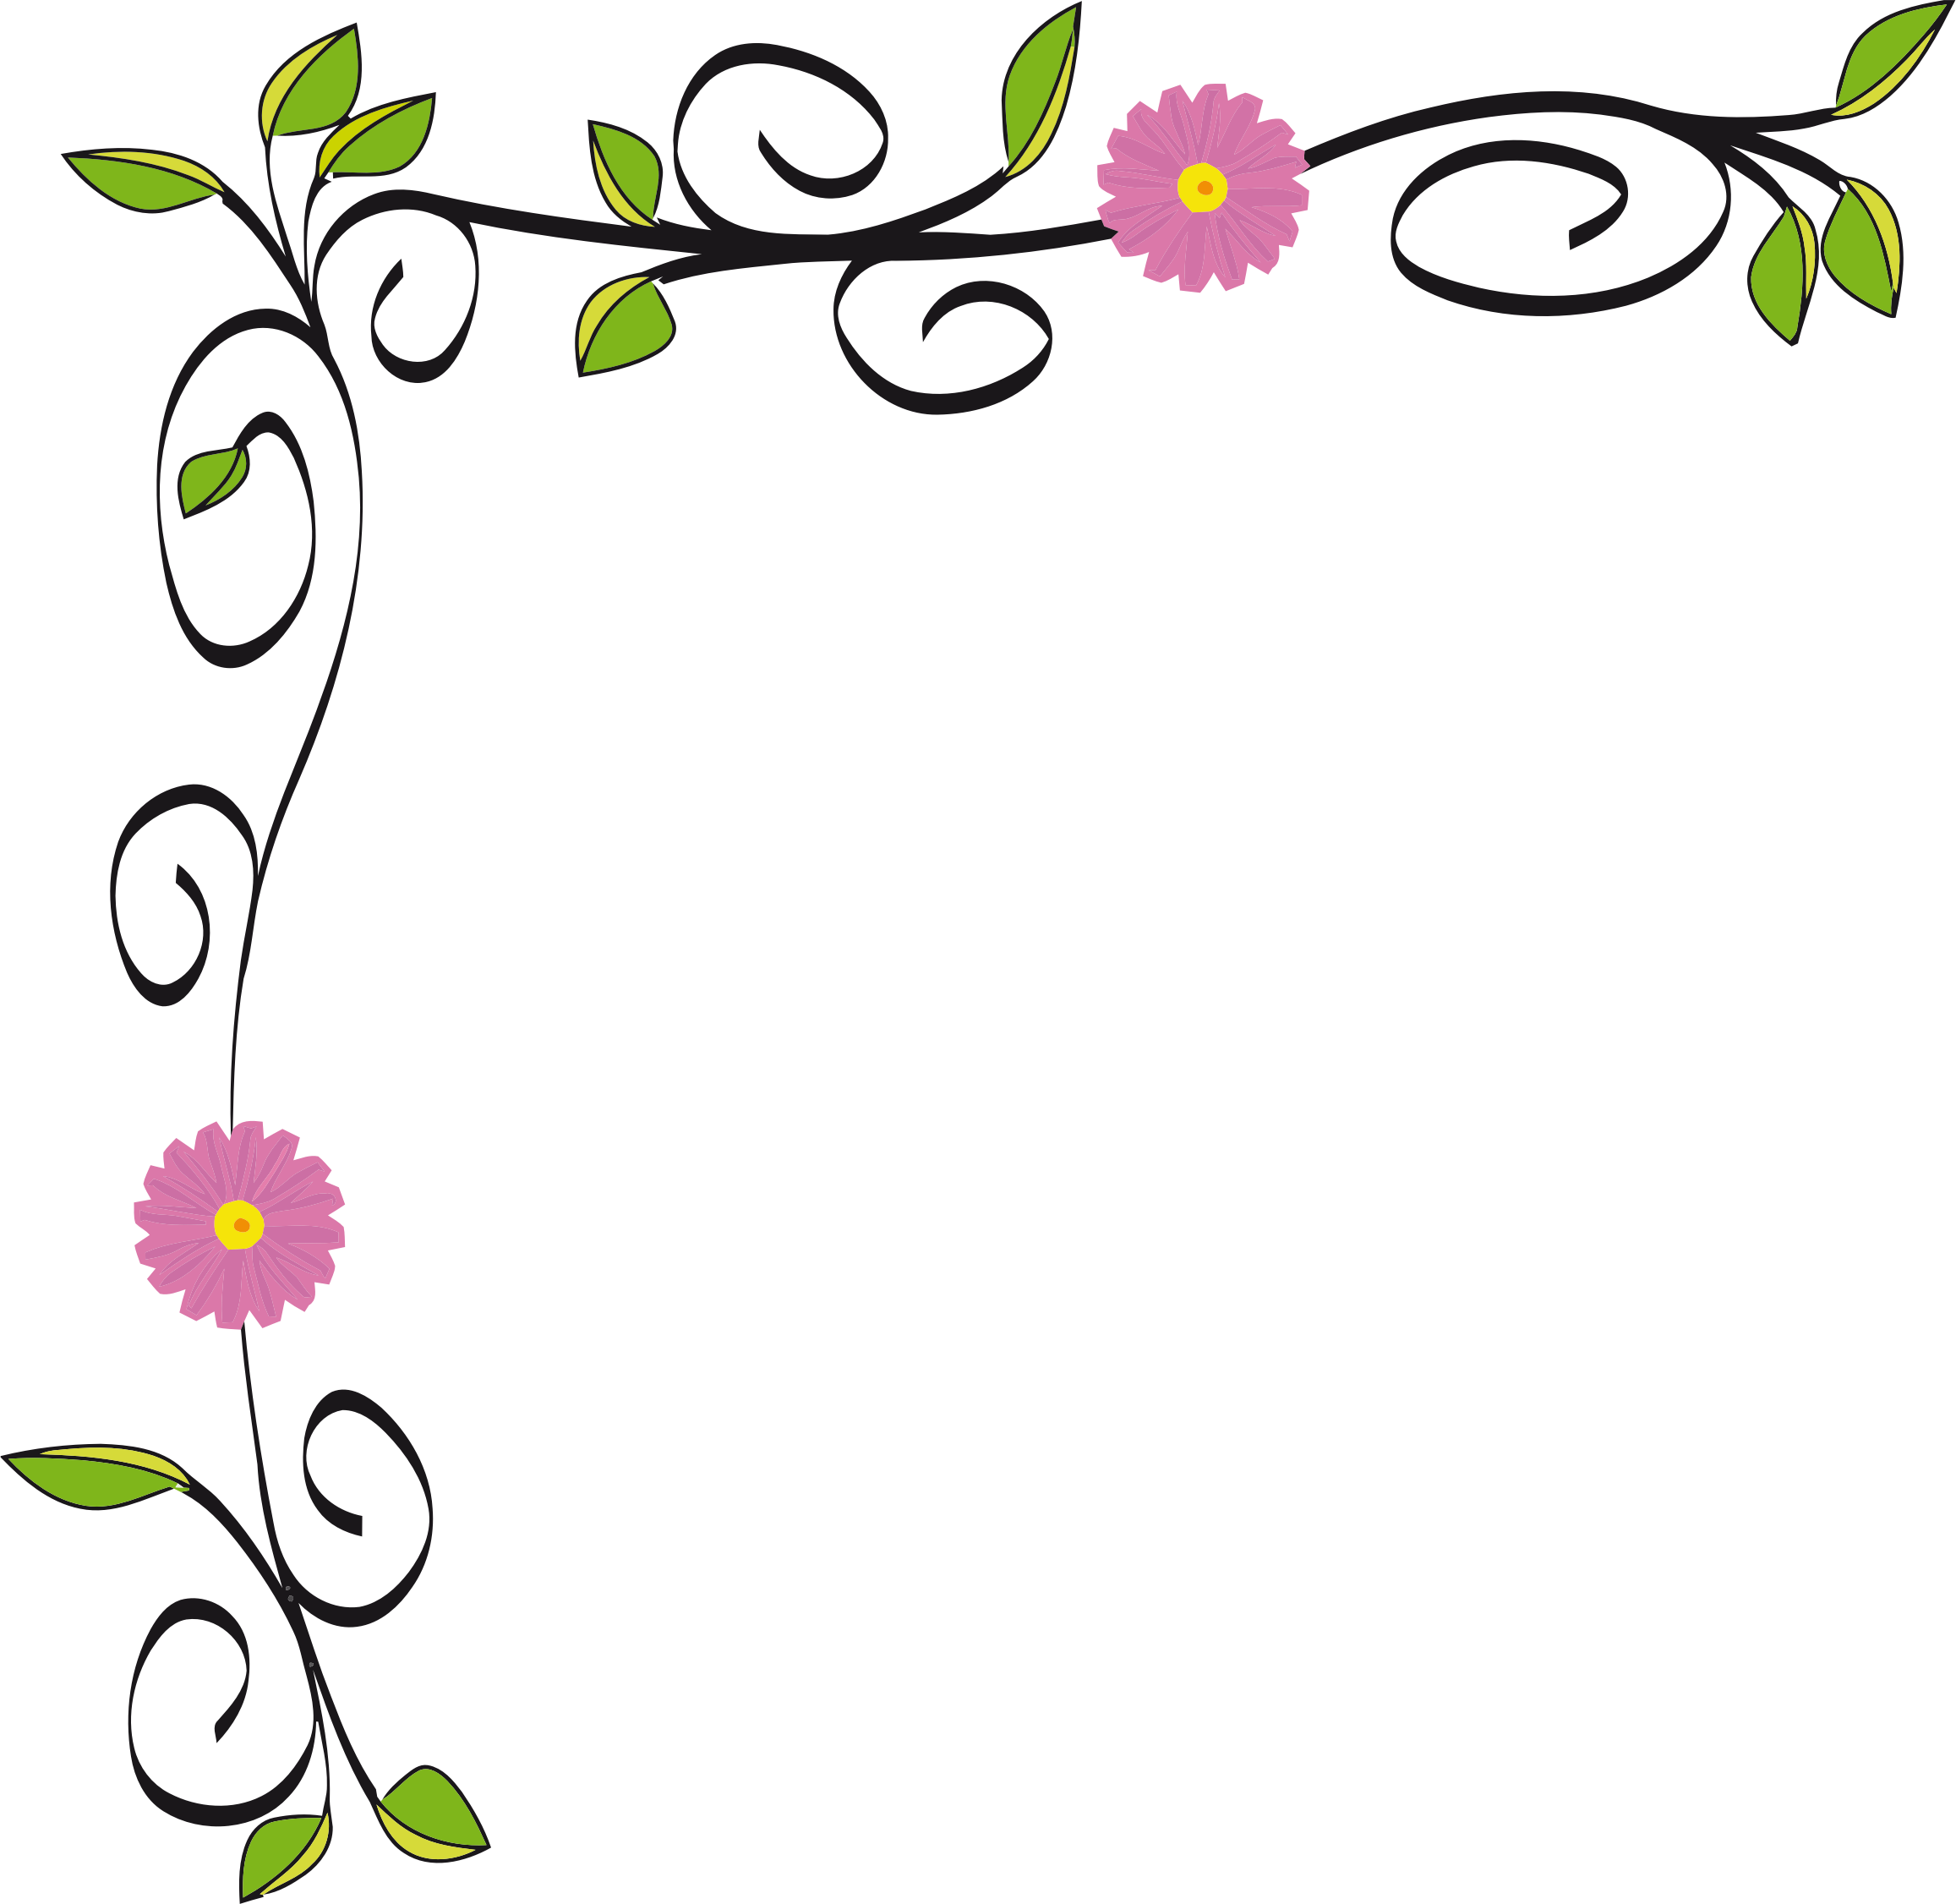 Floral Border Vectorized by GDJ.